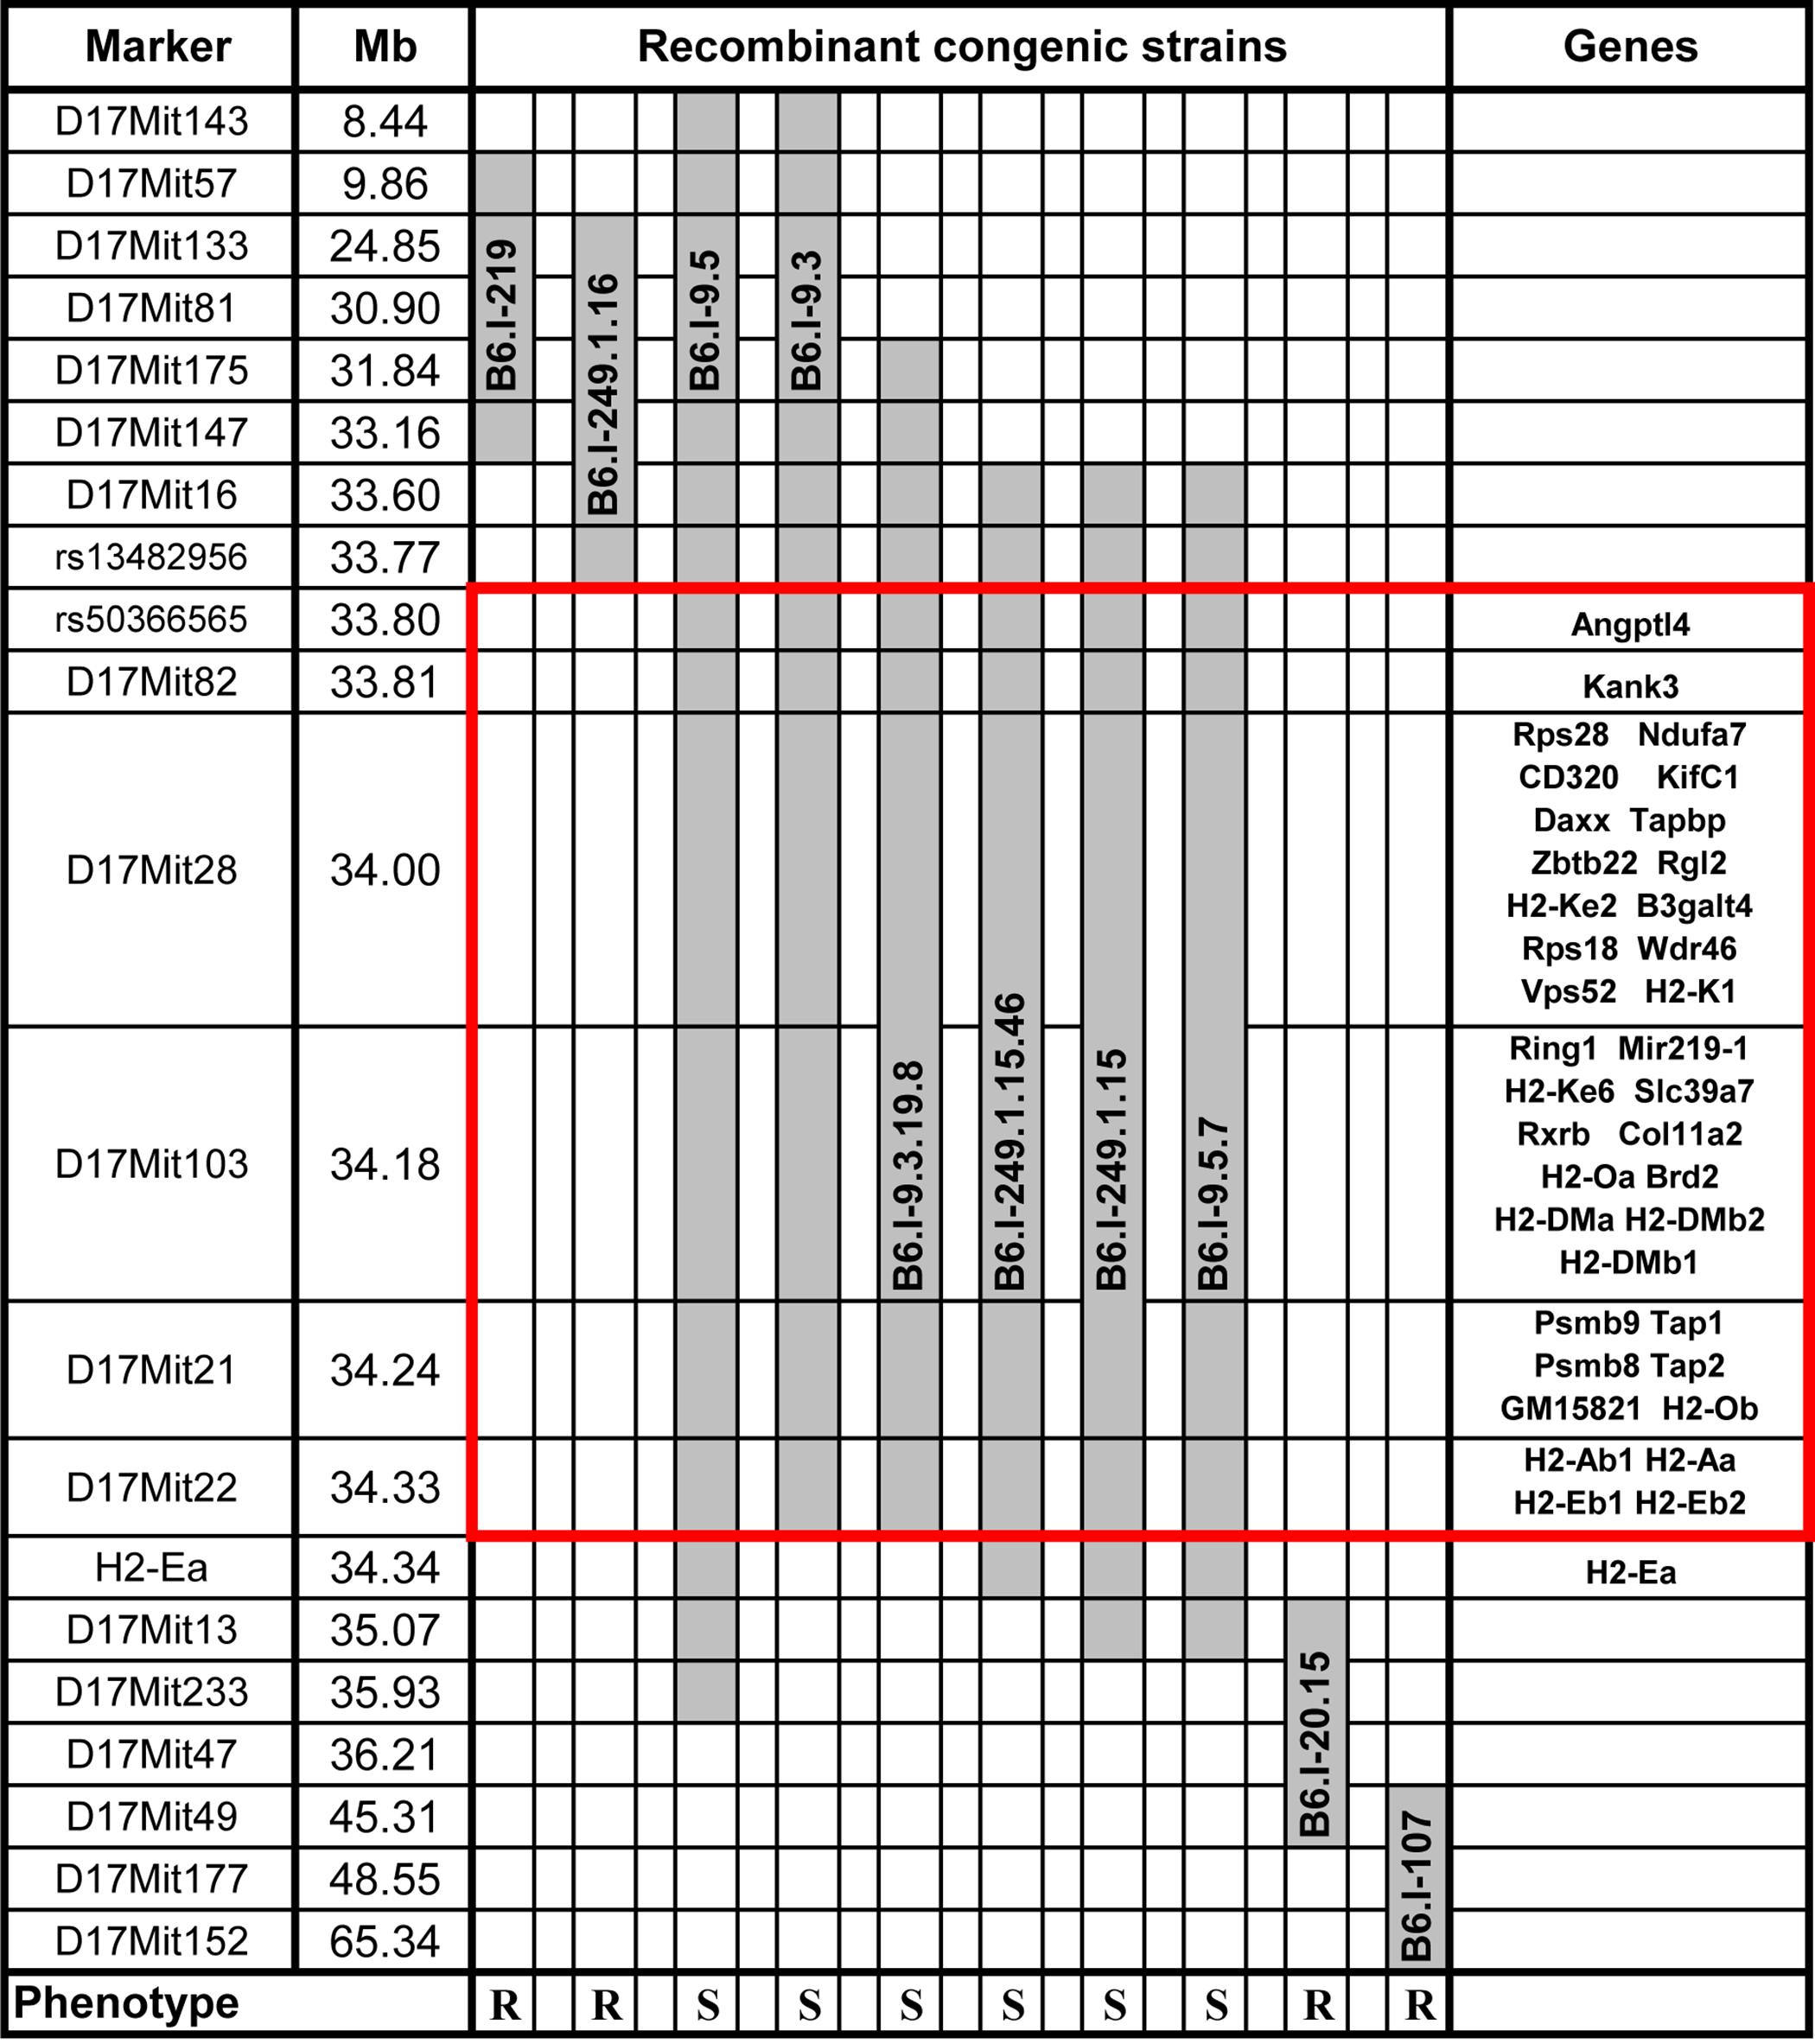 Chart of the extended <i>H2</i> genomic region in novel recombinant congenic strains.